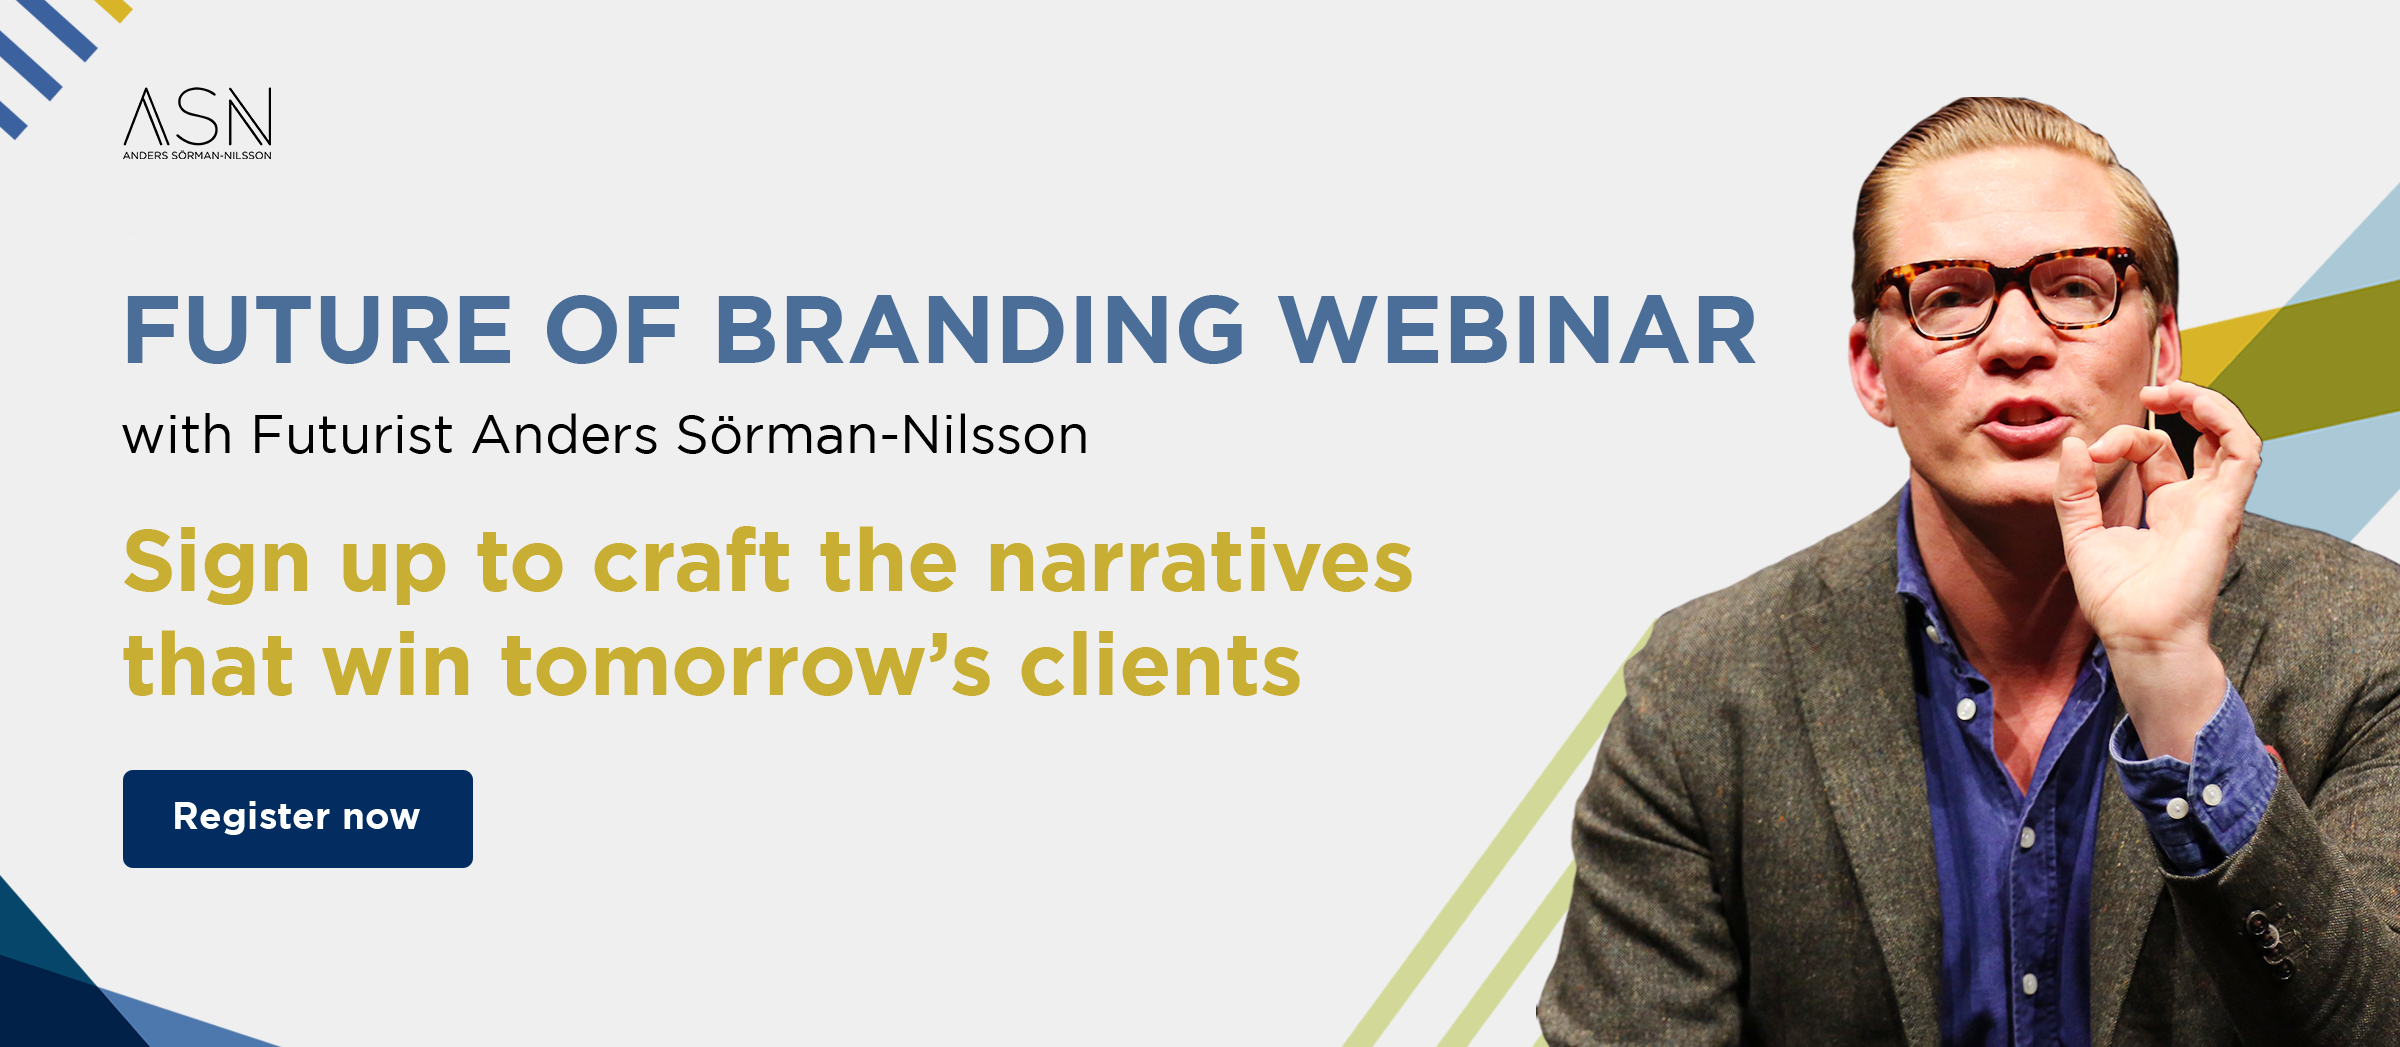 Future of Branding Webinar 2019 - On-Demand